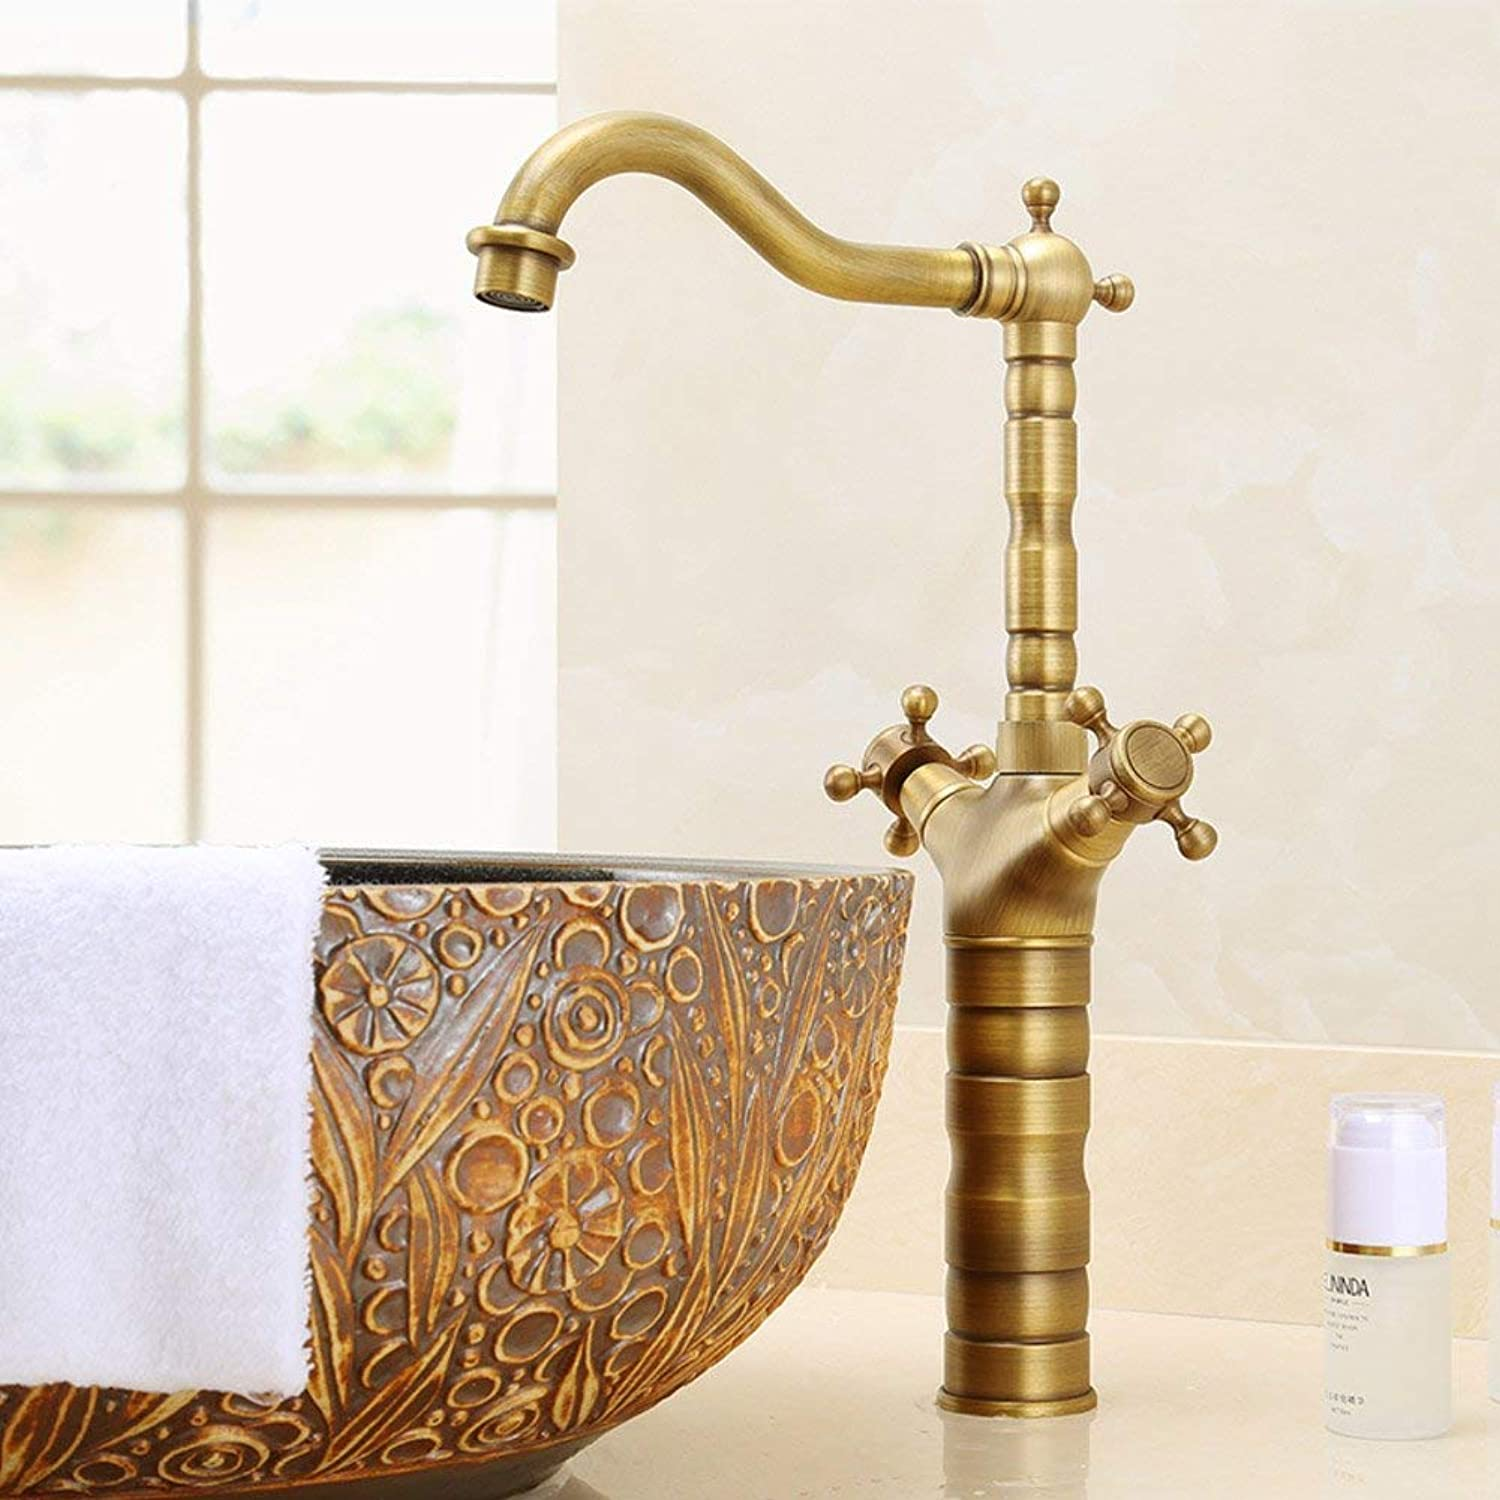 FuweiEncore Bathroom sink taps Antique redating faucet hot and cold european-style copper vintage basin faucet single hole bronze washbasin faucet-B